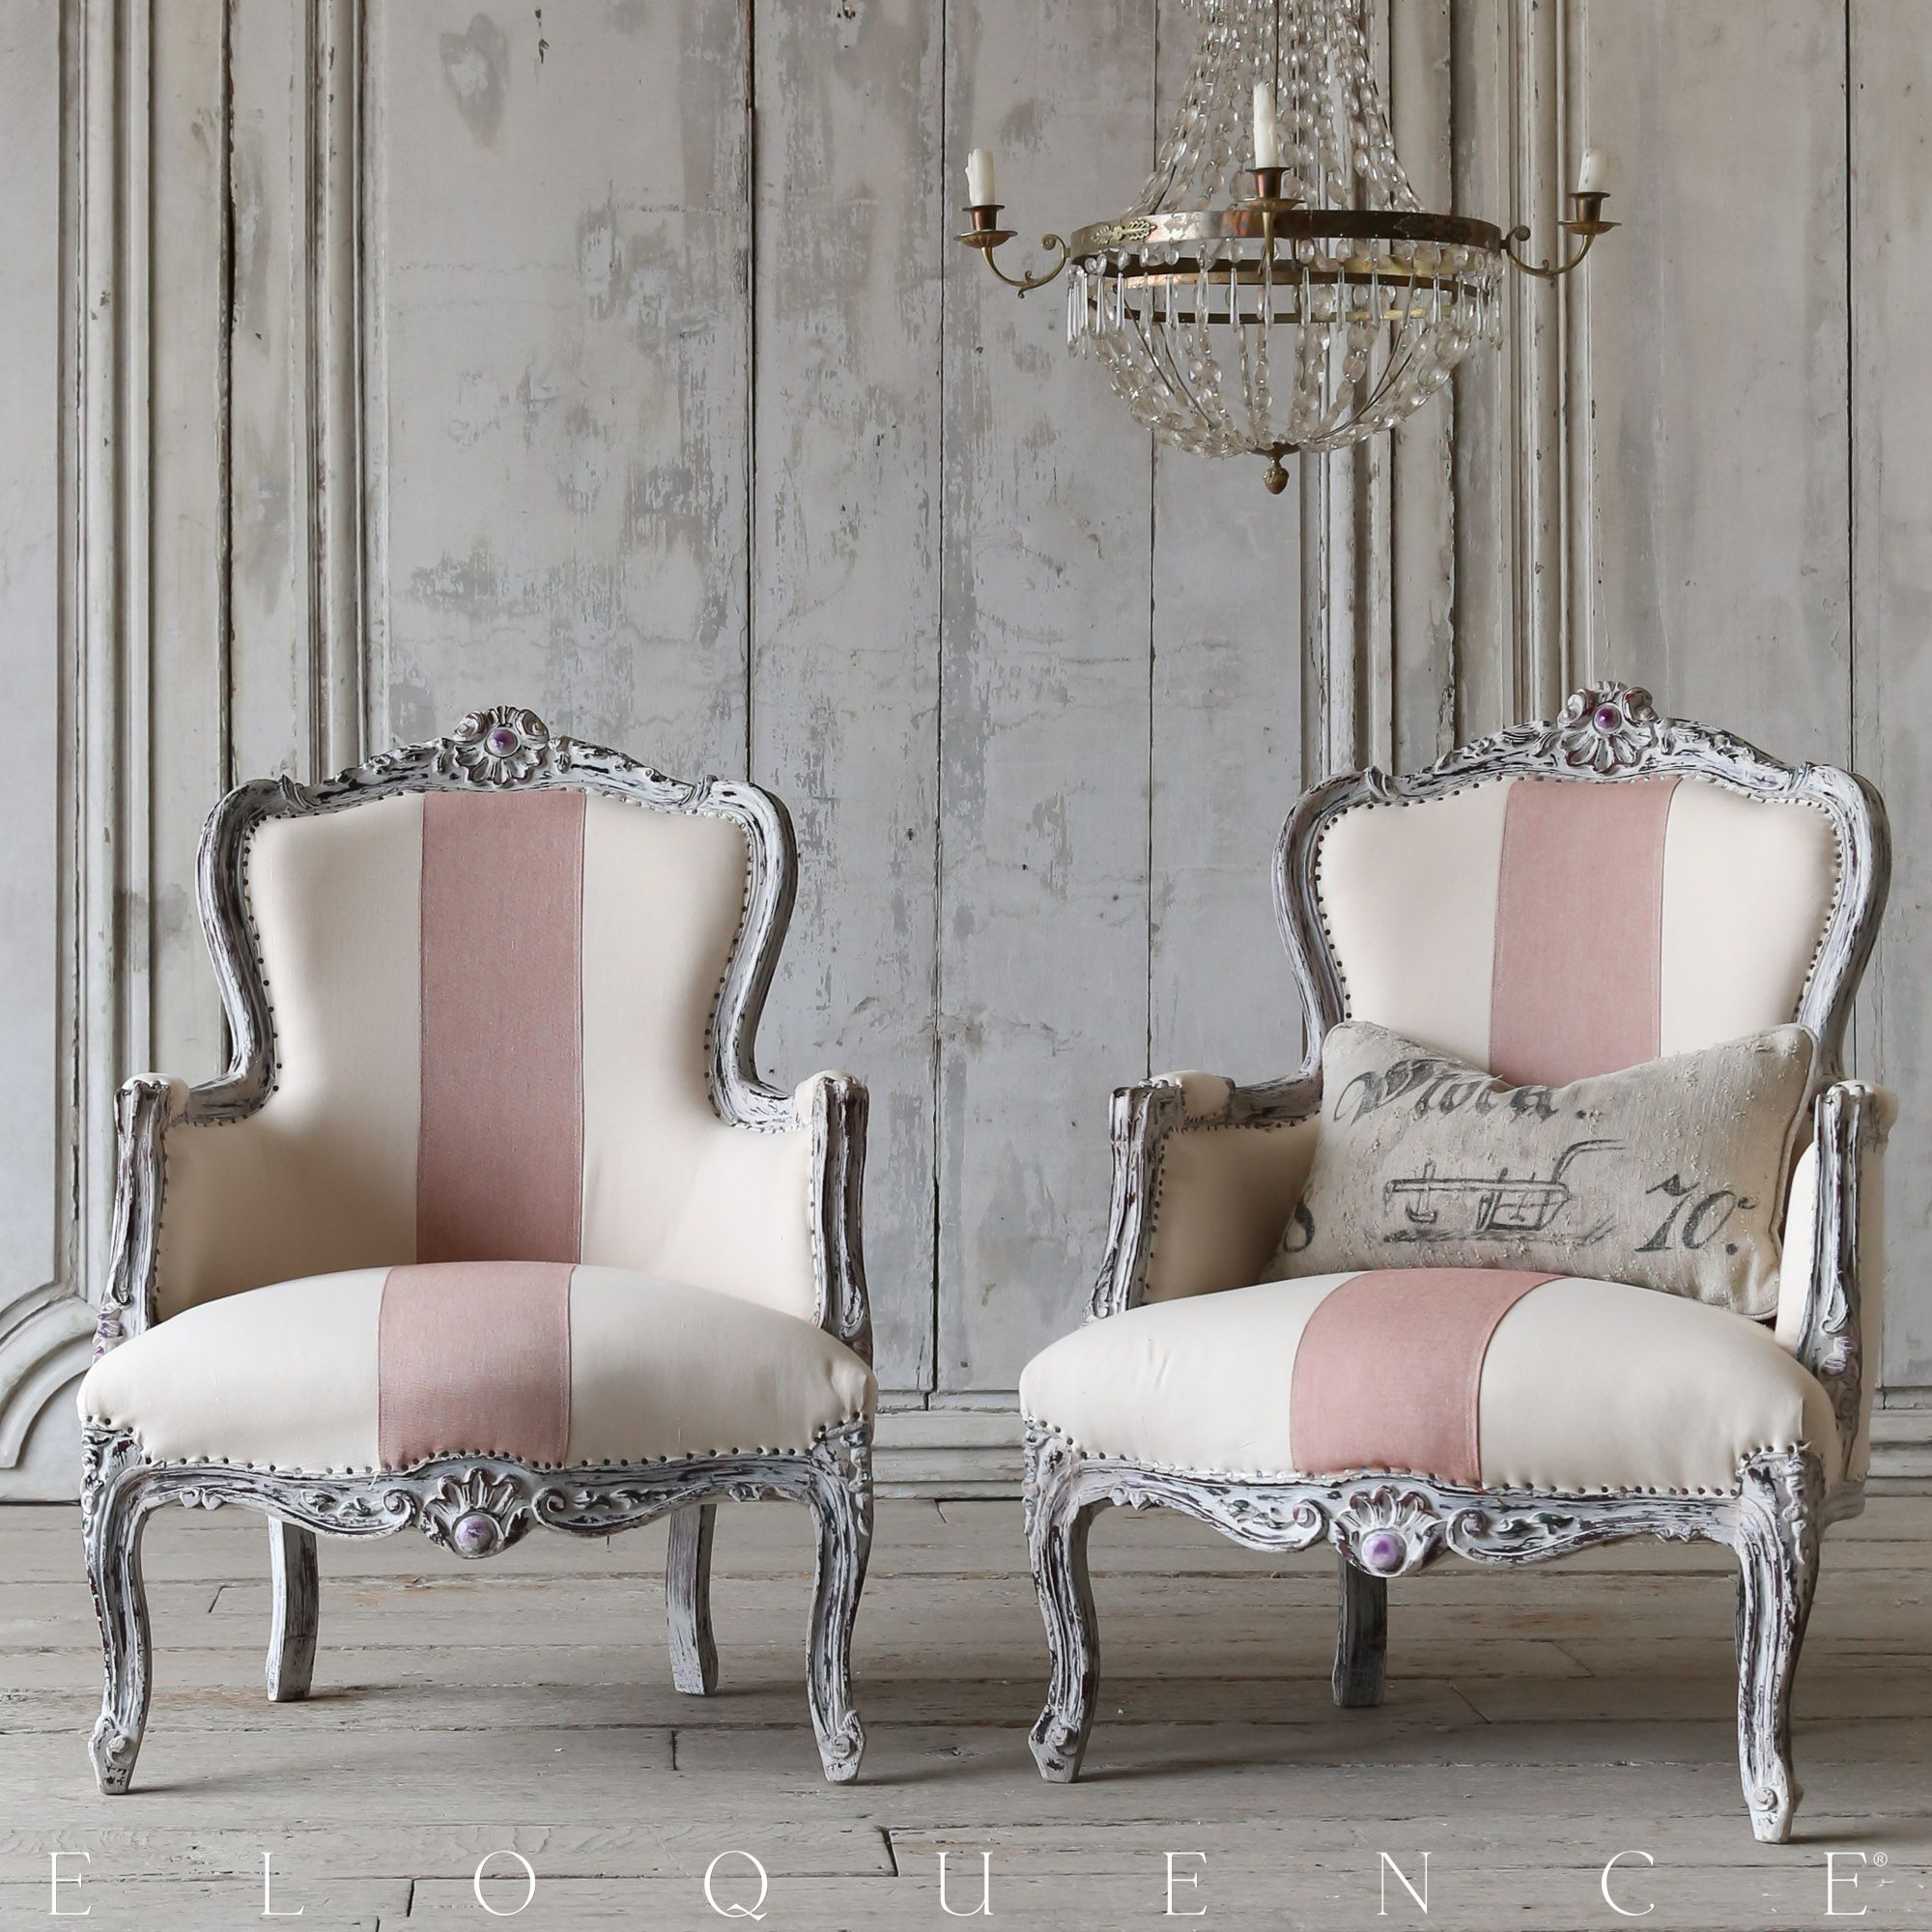 Eloquence vintage bergere 39 s in a distressed washed grey for Sedie svedesi design